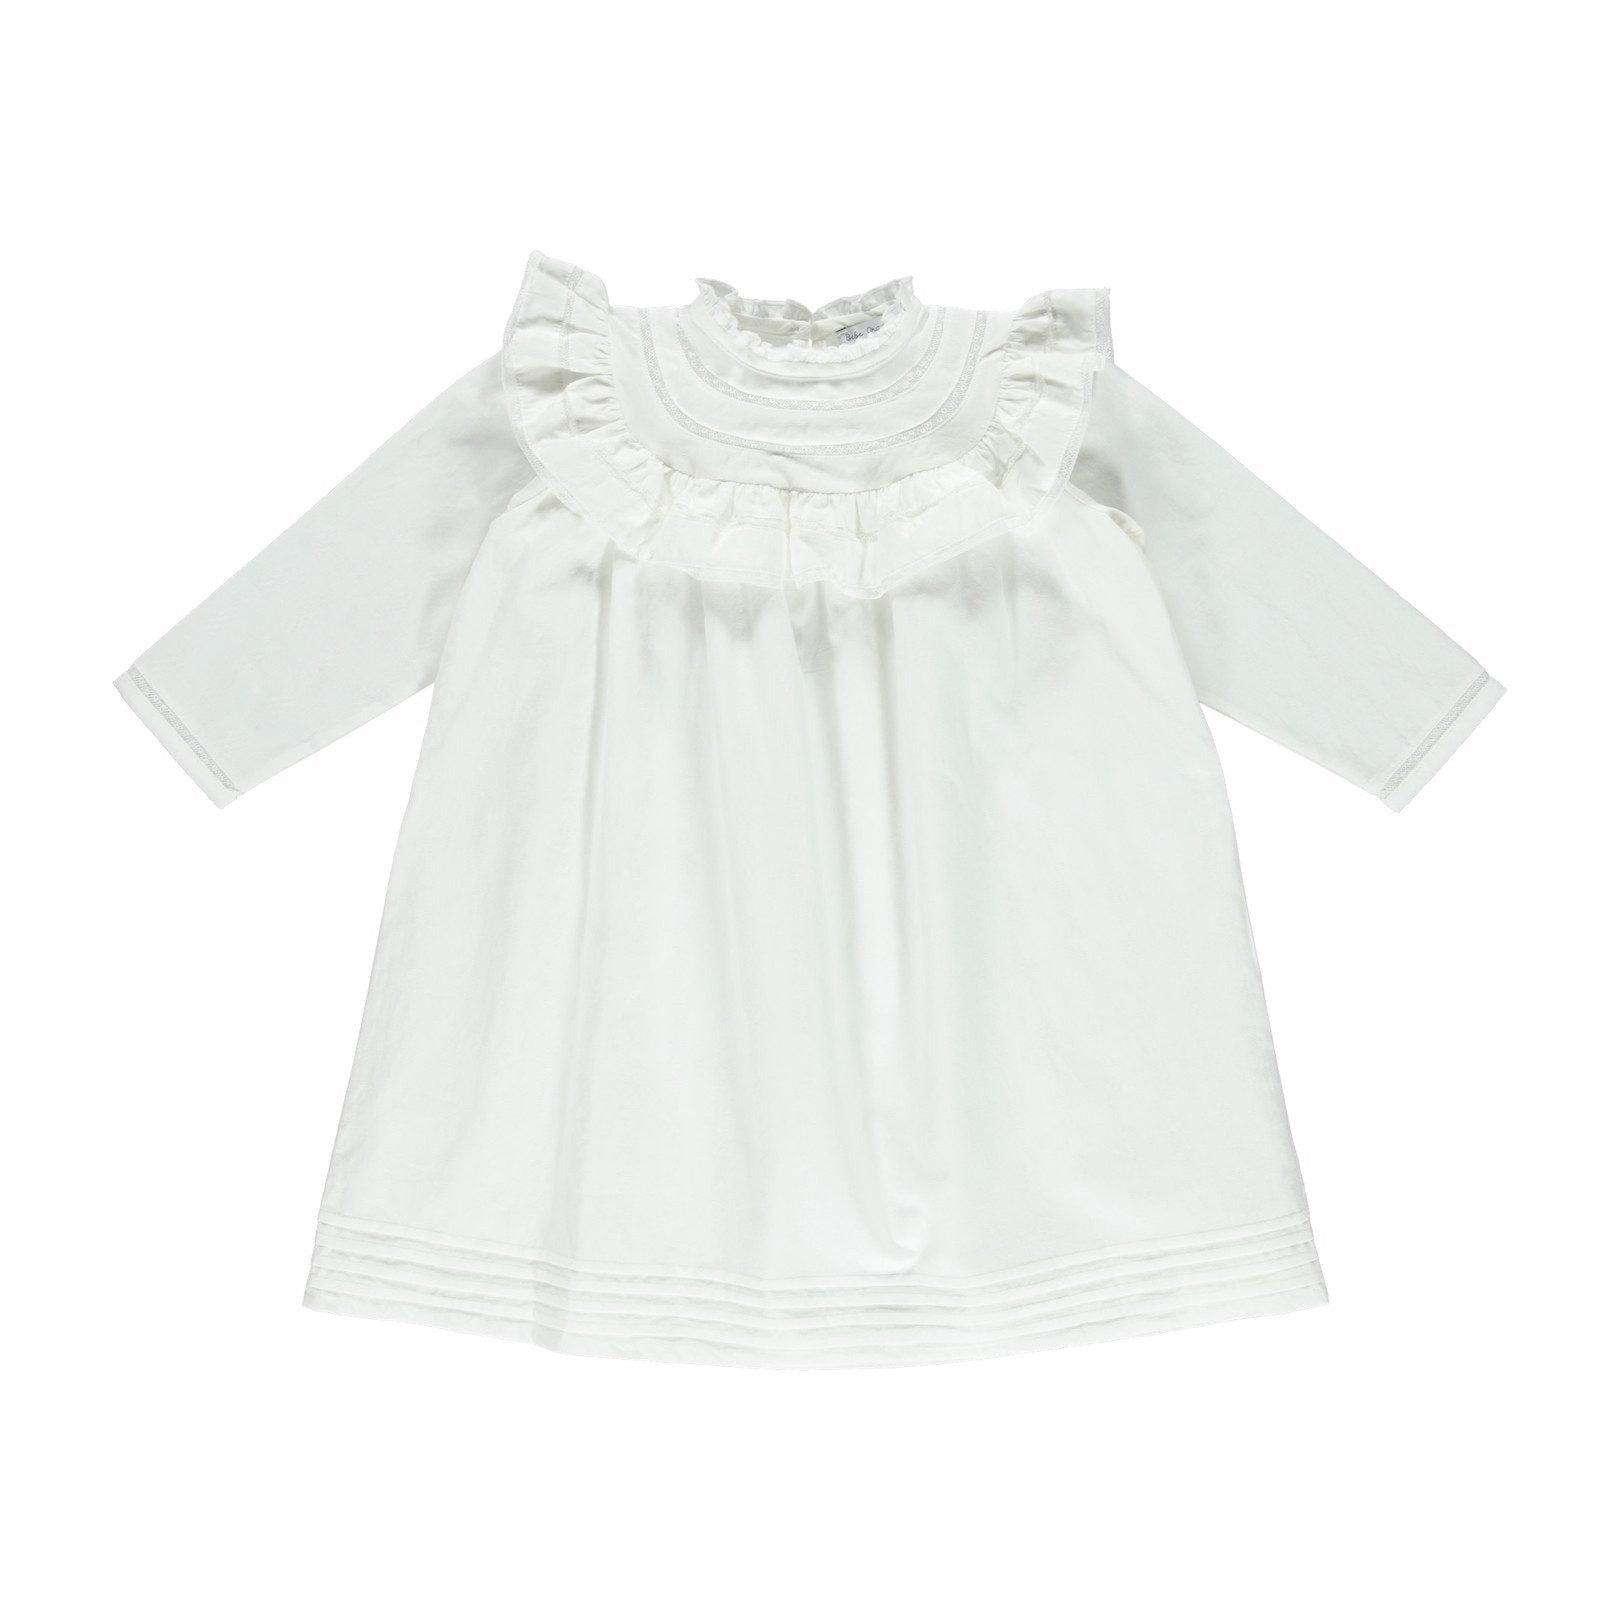 ORGANIC COTTON 'CRISTINA DRESS', OFF WHITE | BEBE ORGANIC - Spinel Boutique